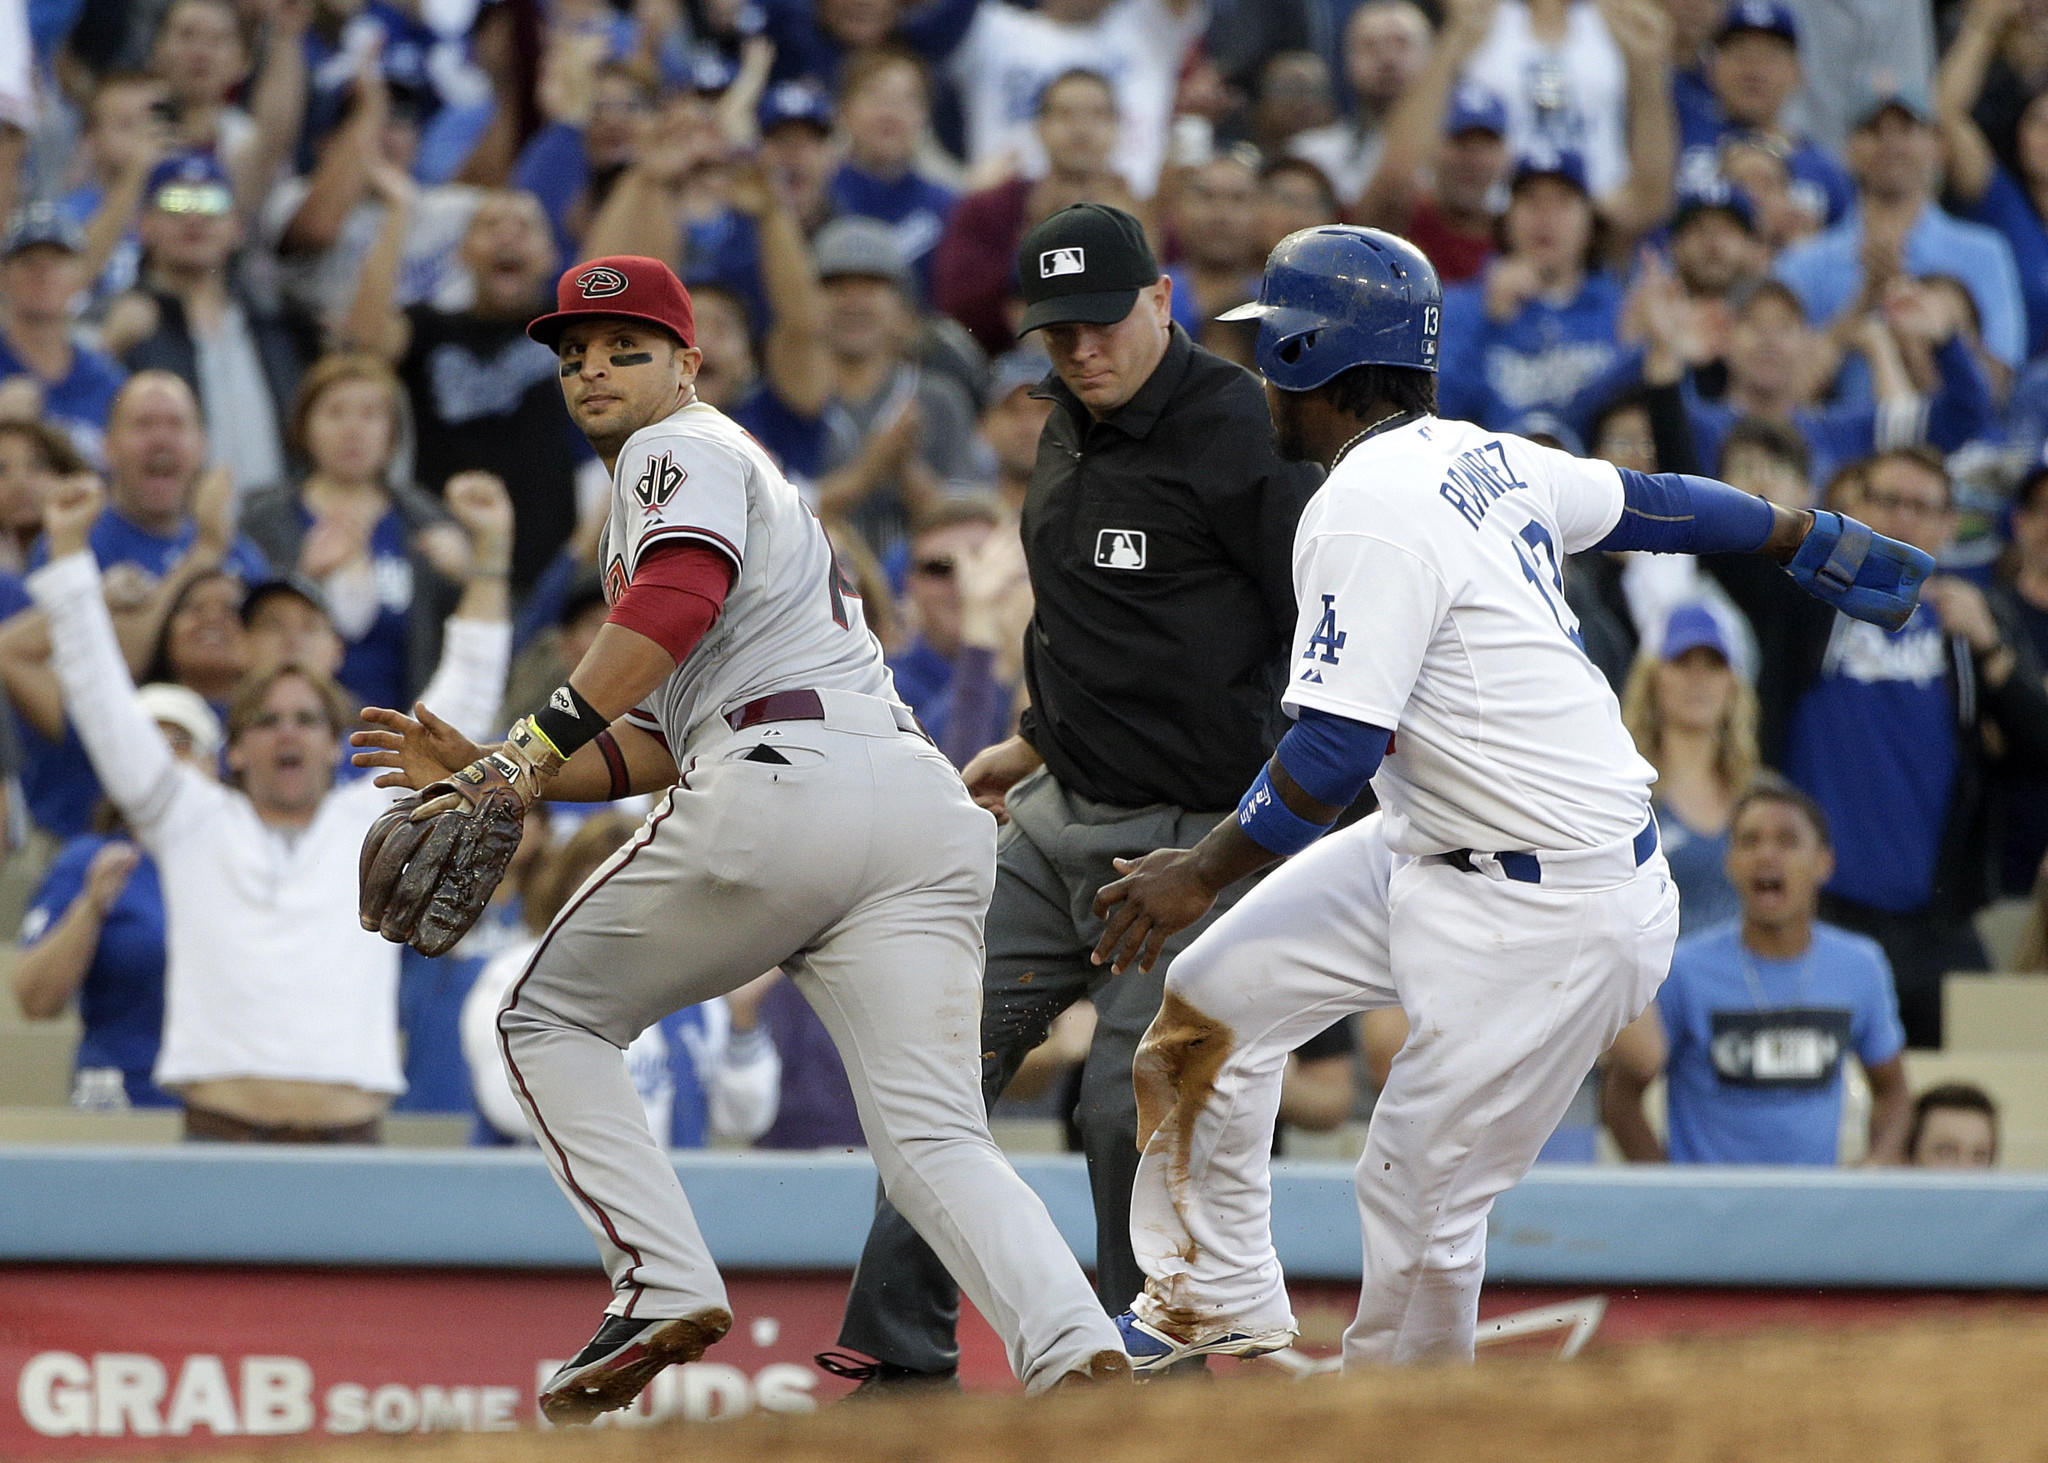 Hanley Ramirez, right, safely takes third base as Arizona's Martin Prado goes after the ball during the fifth inning of the Dodgers' 8-6 victory Saturday at Dodger Stadium.